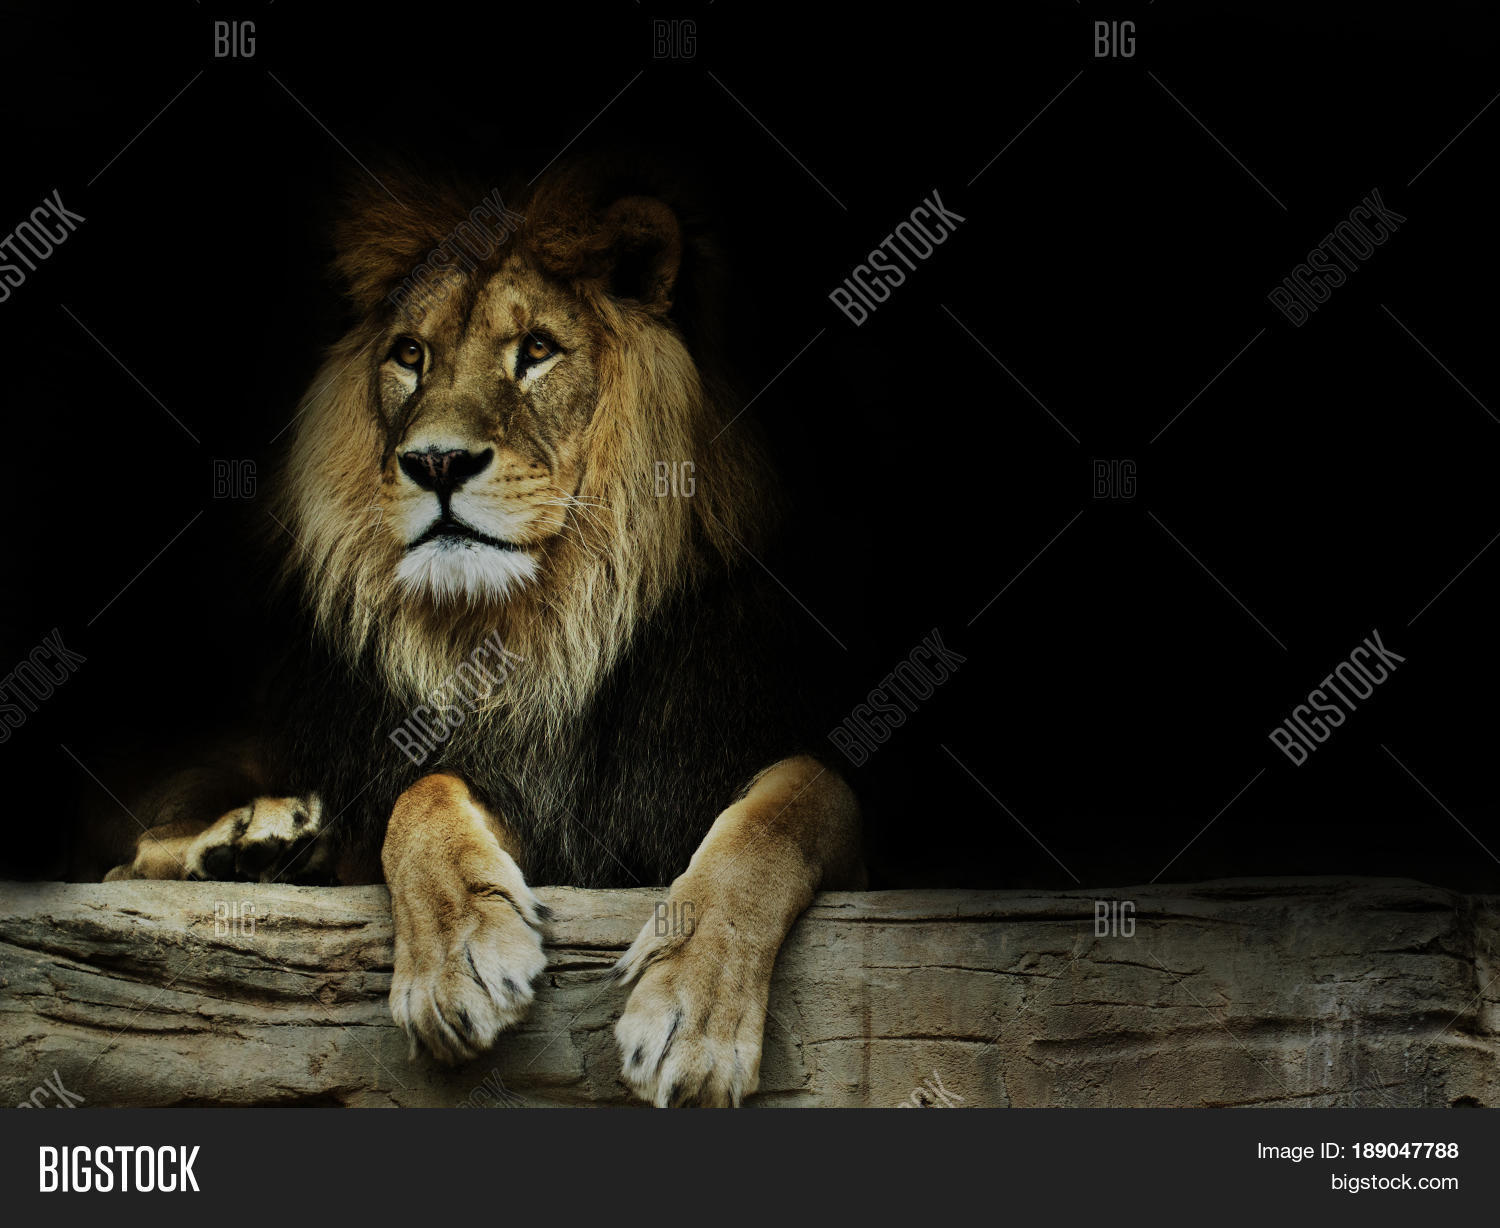 postcard lion. super wallpaper lion image & photo | bigstock